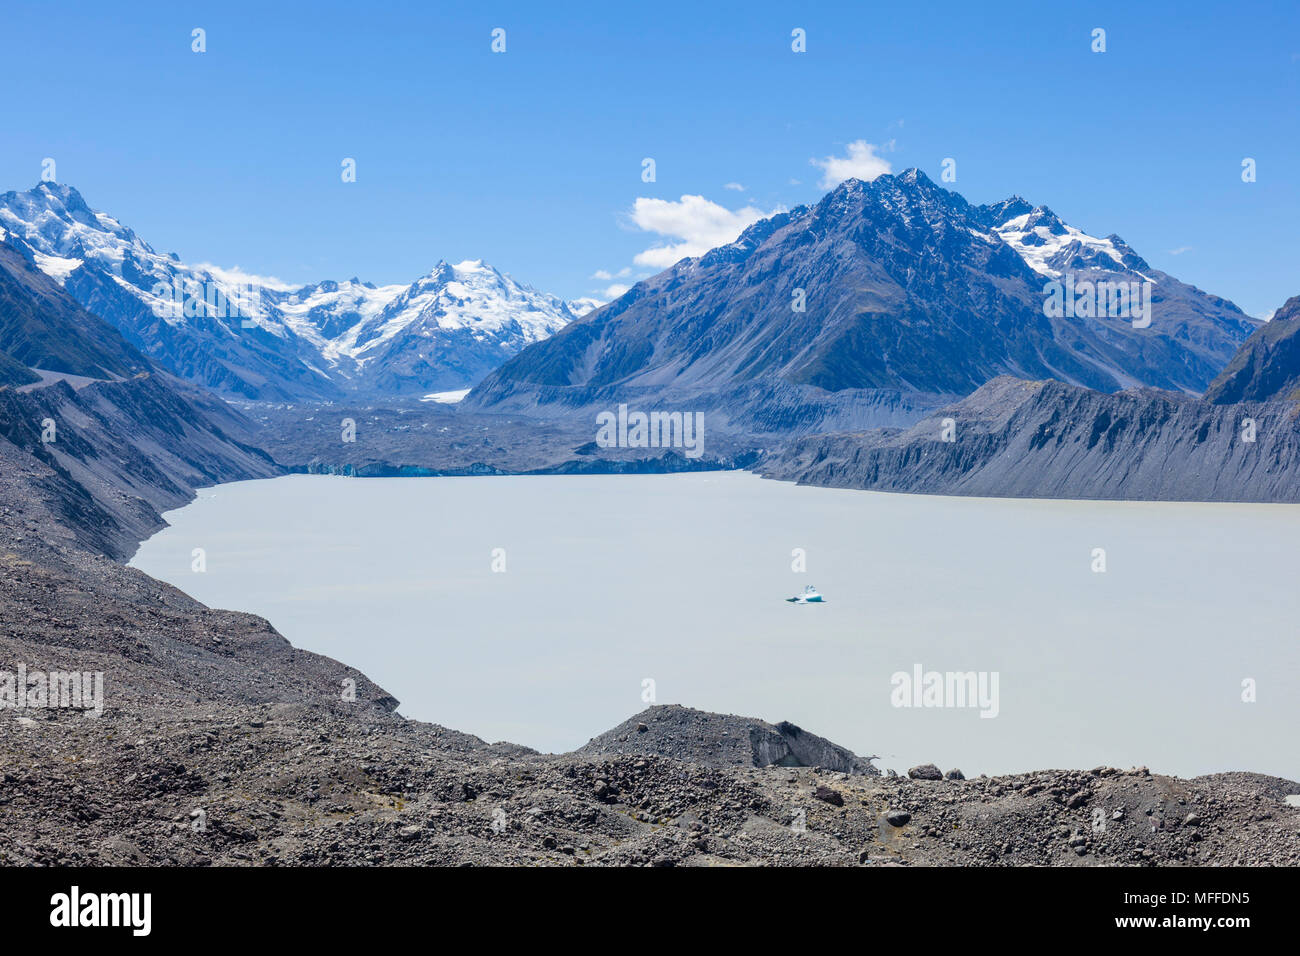 new zealand south island new zealand Tasman glacier from the viewpoint mount cook national park south island new zealand nz - Stock Image